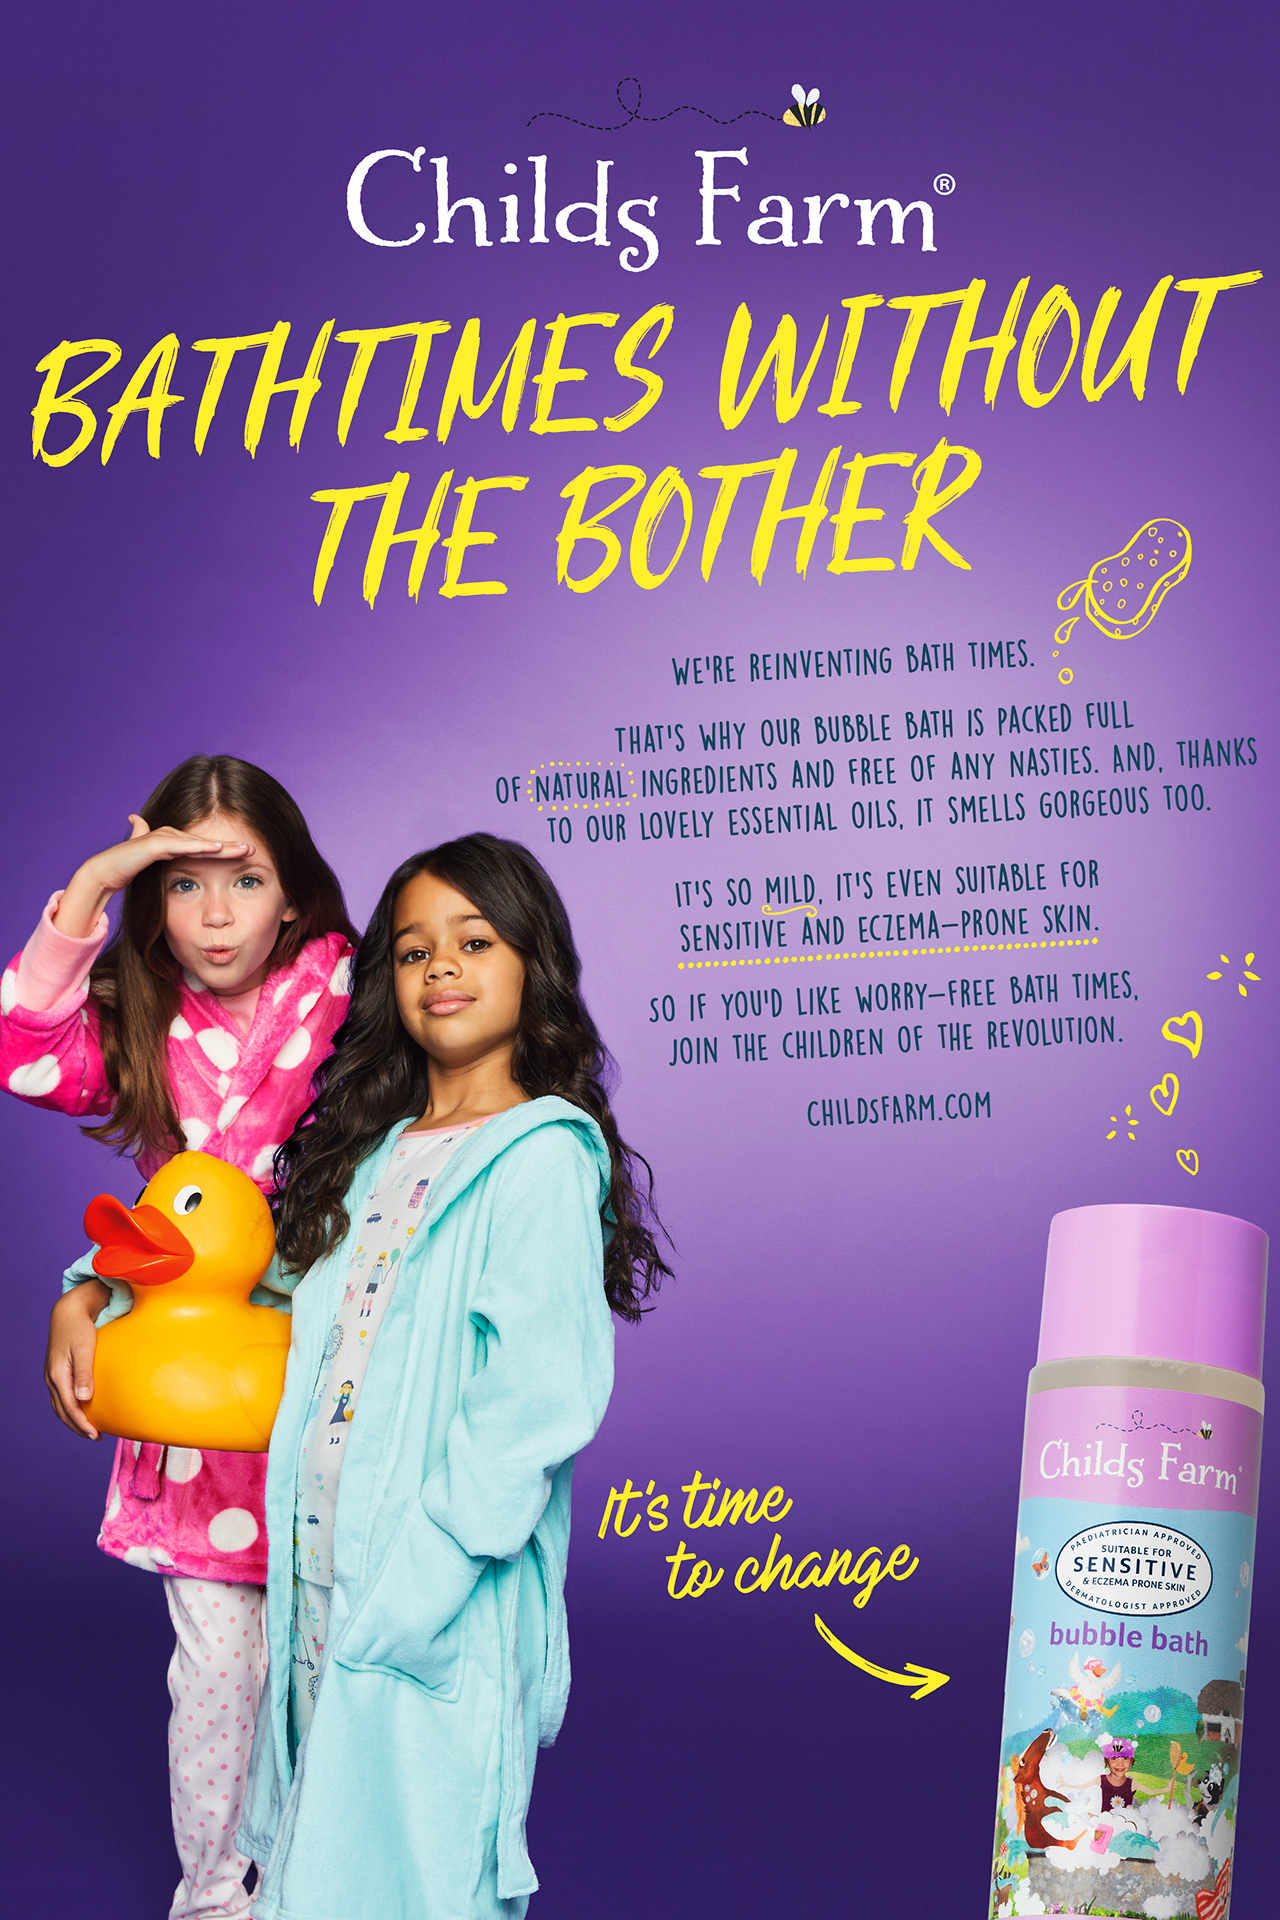 Childs Farm Advert BATHTIMES WITHOUT THE BOTHER  Emma Tunbridge